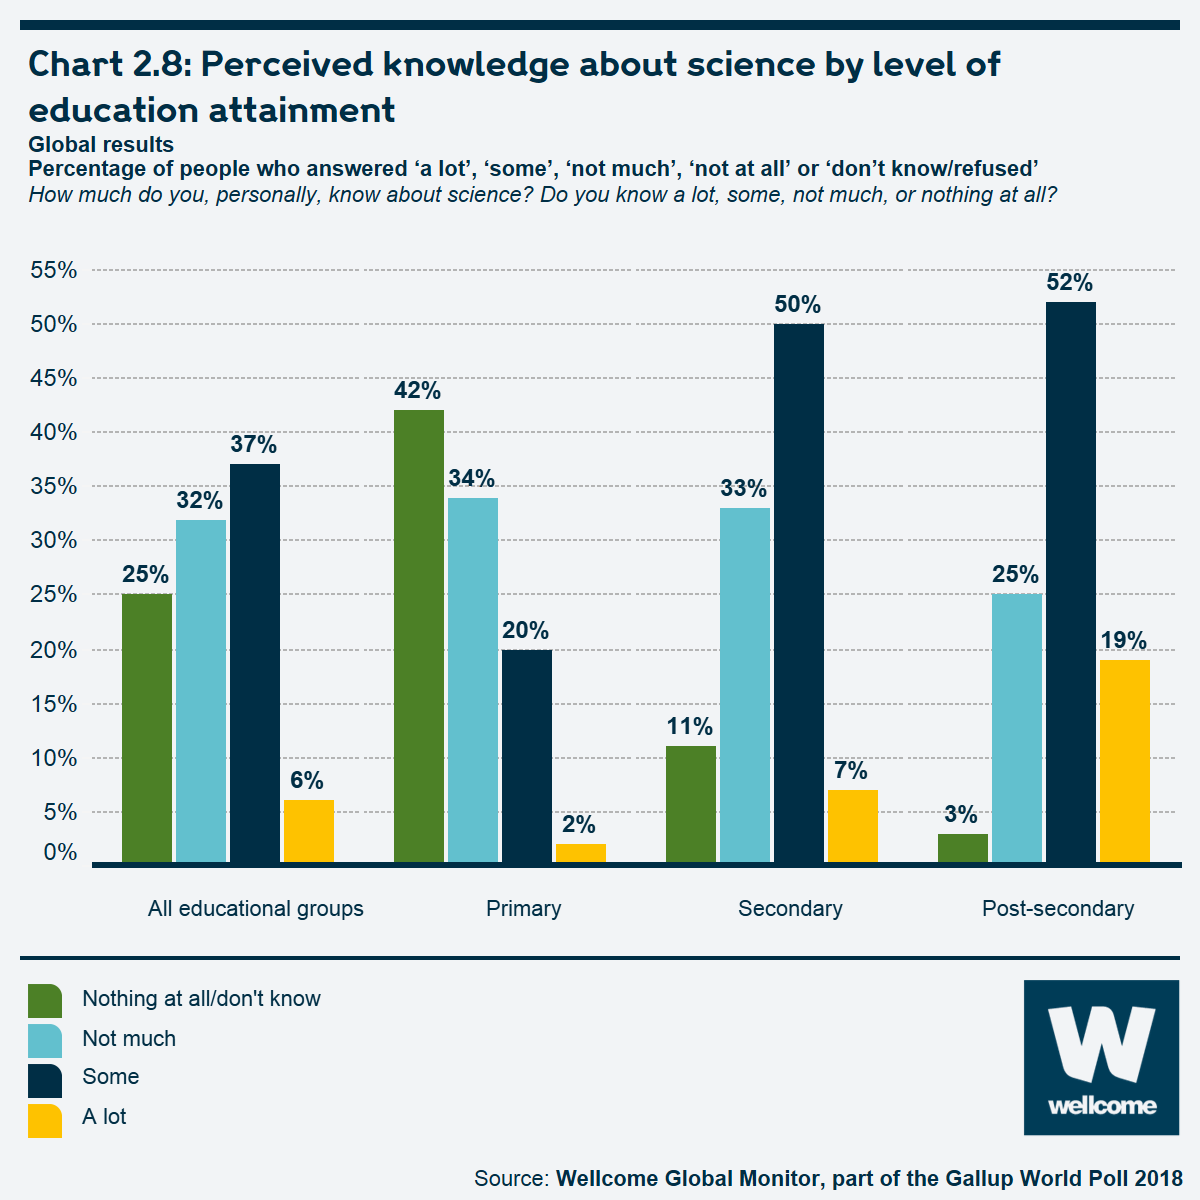 Chart 2.8: Perceived knowledge about science by level of education